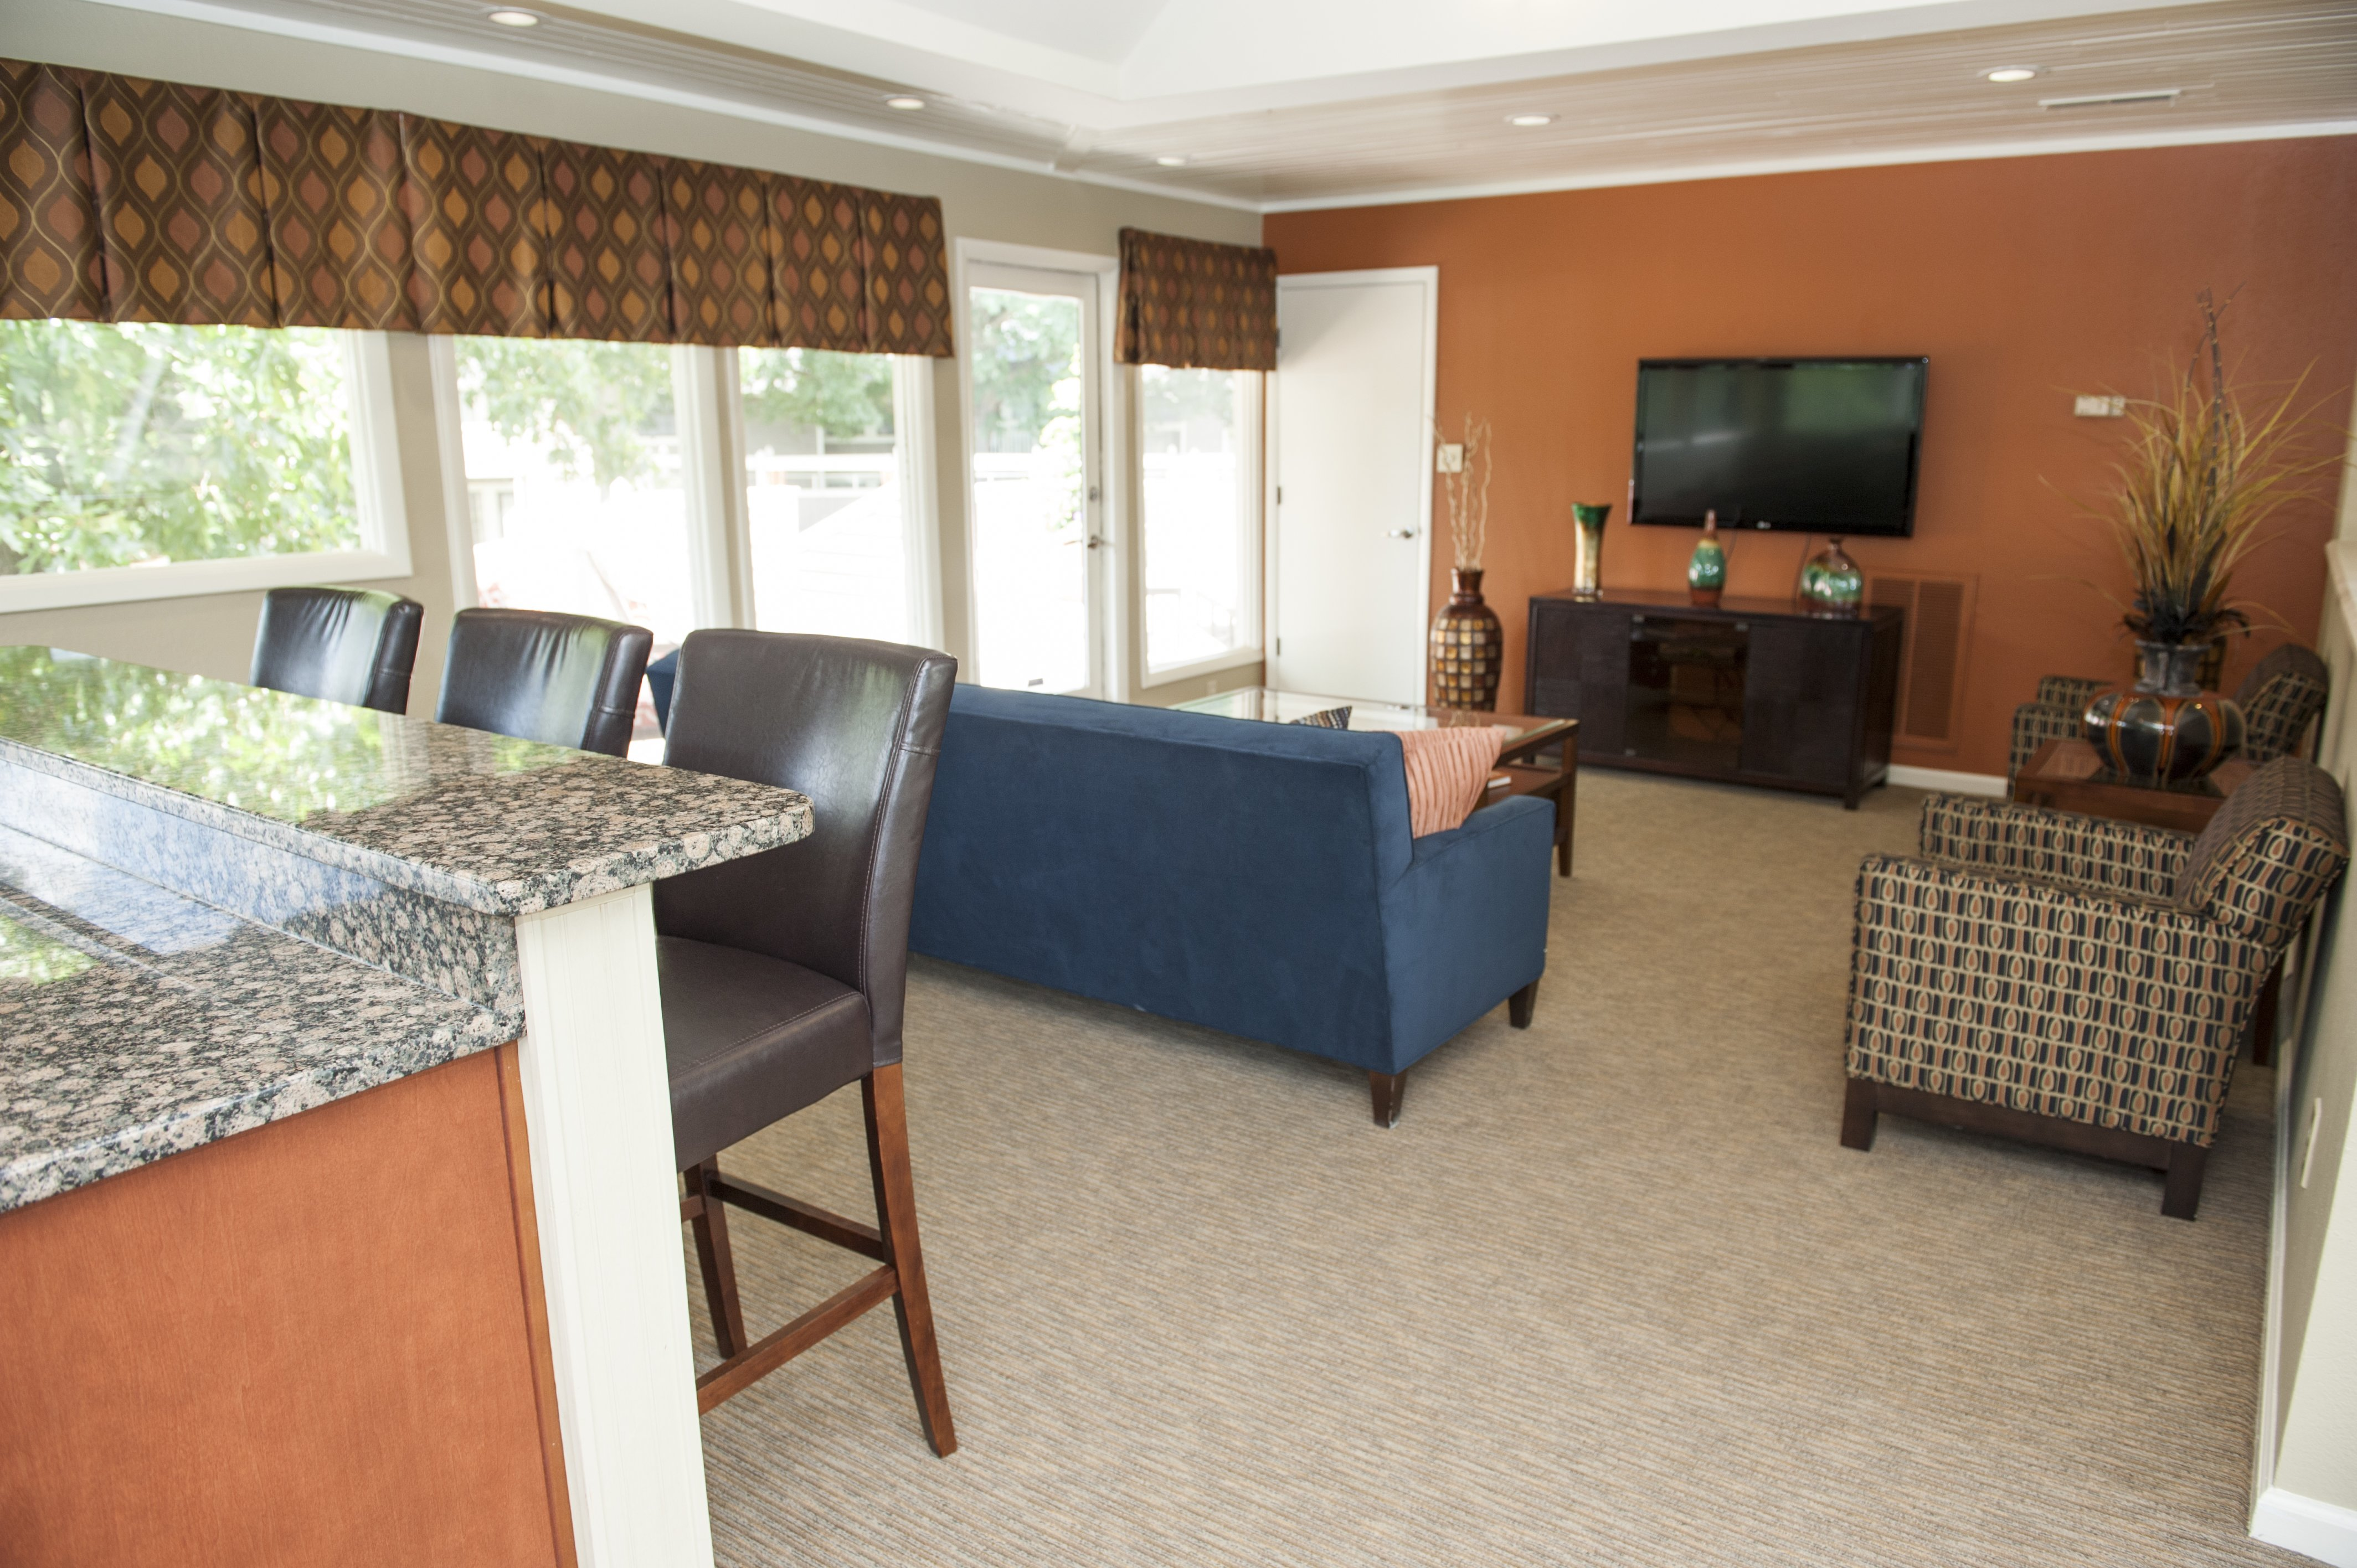 2 Bedroom Apartments Raleigh Nc 28 Images 2 Bedroom